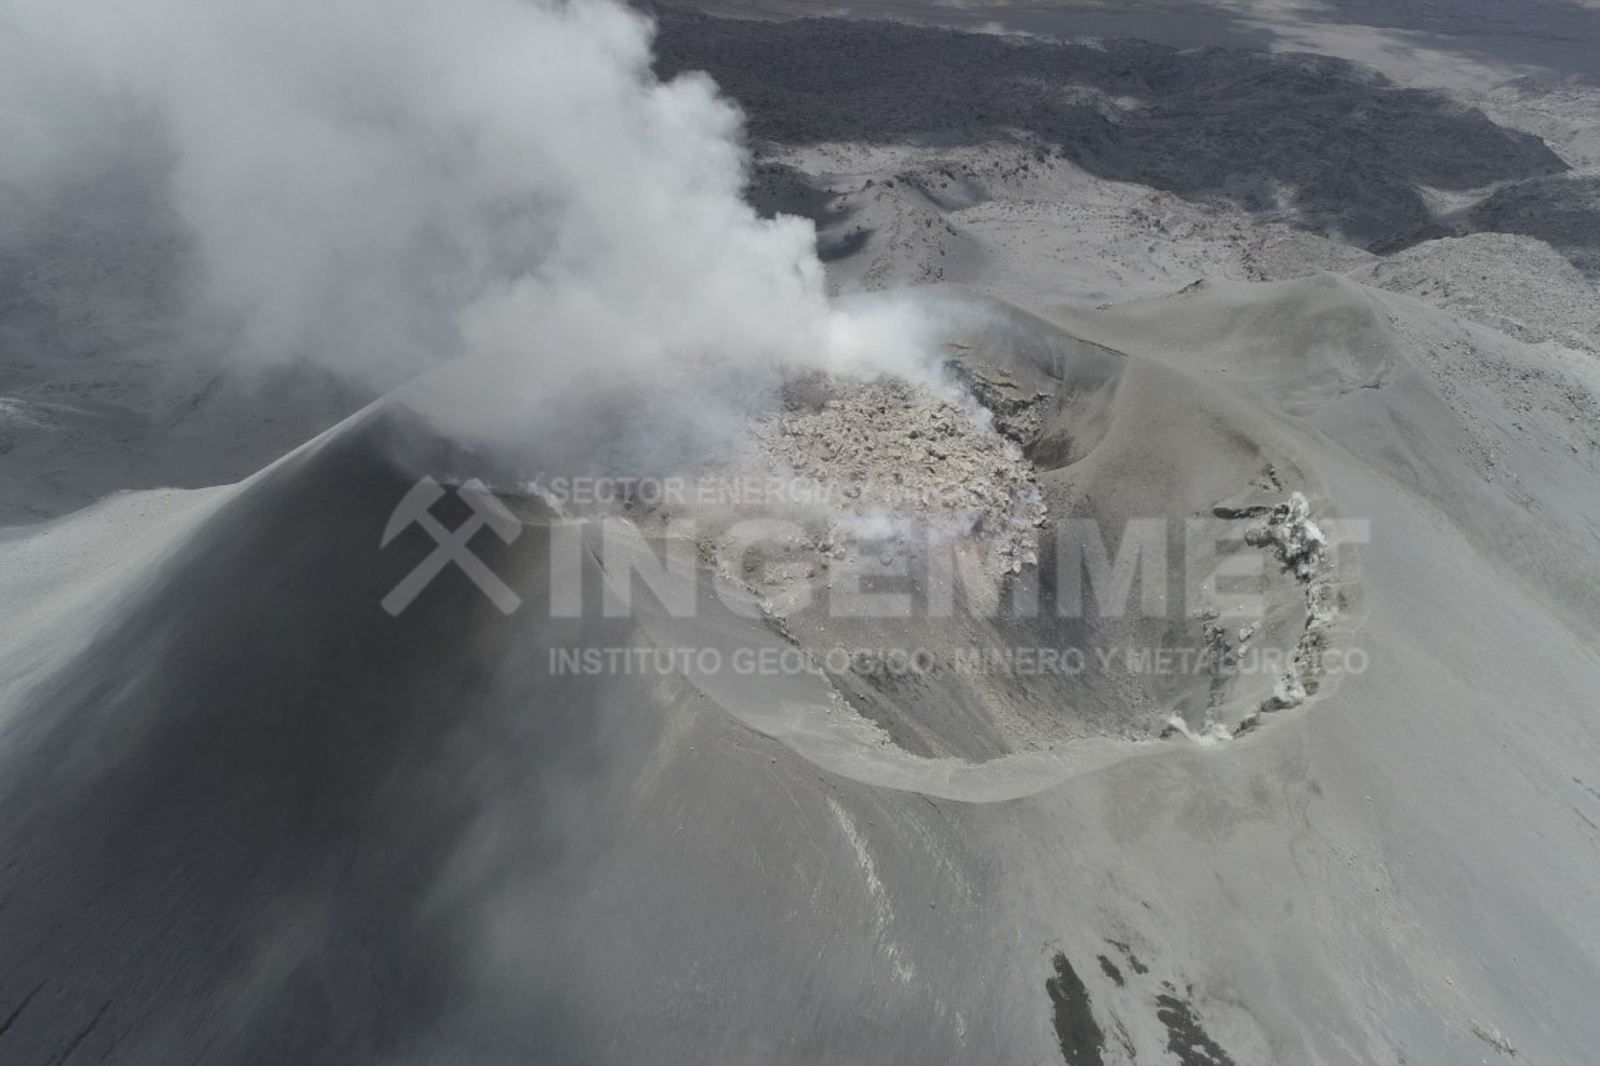 Sabancaya - the dome occupies a large part of the northern sector of the crater - drone flyover photo uploaded by the OVI on 28.10.2019